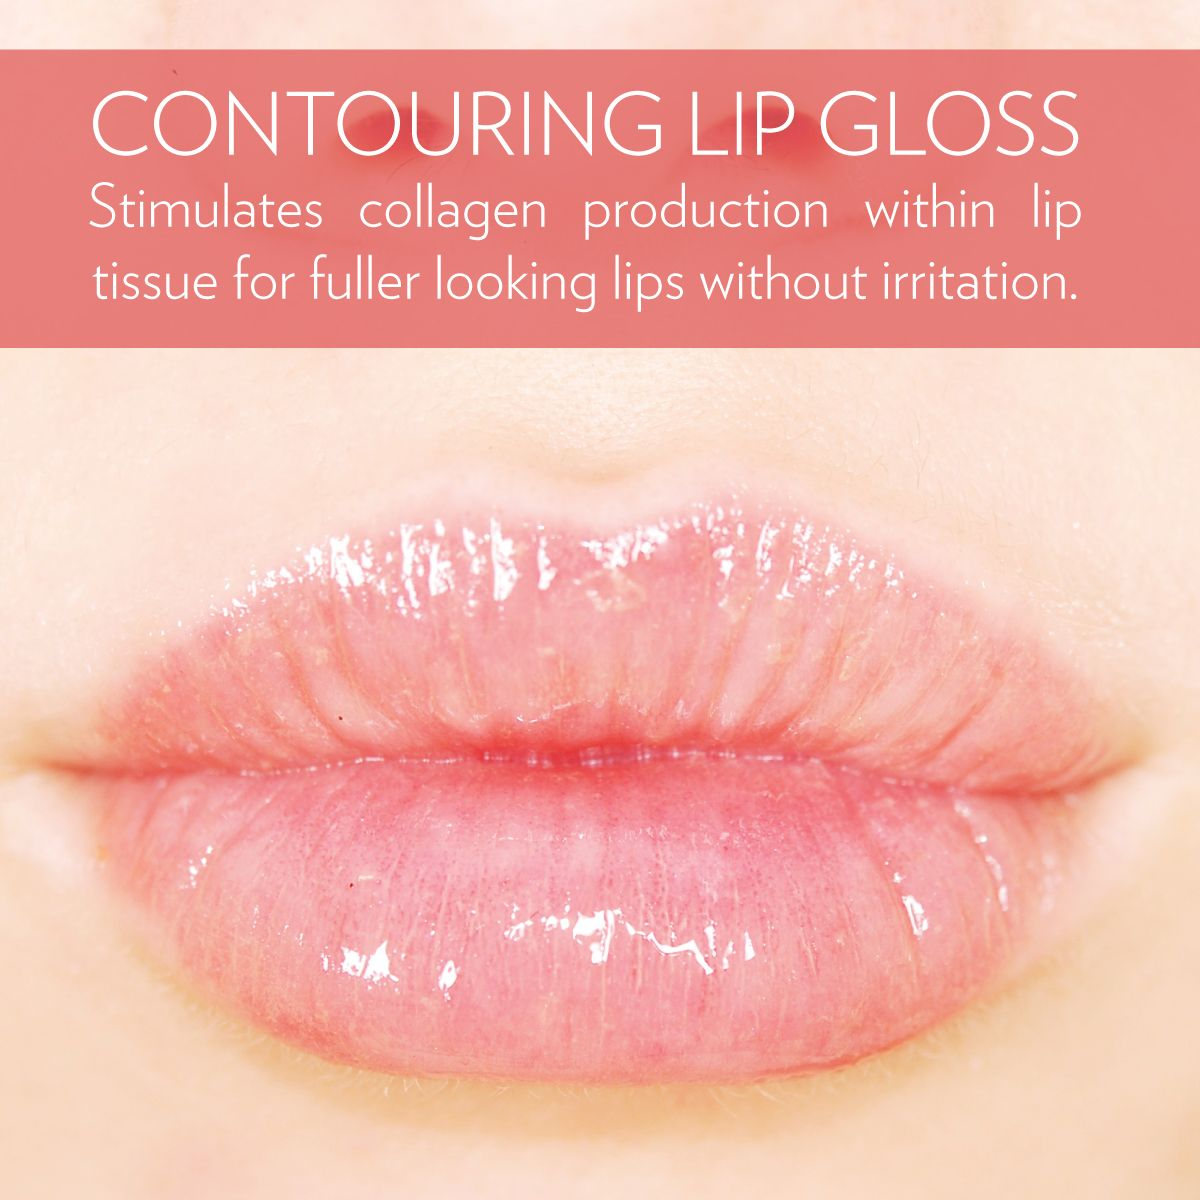 Contouring Lip Gloss Crystal Clear This Ultra Shiny Gloss Features